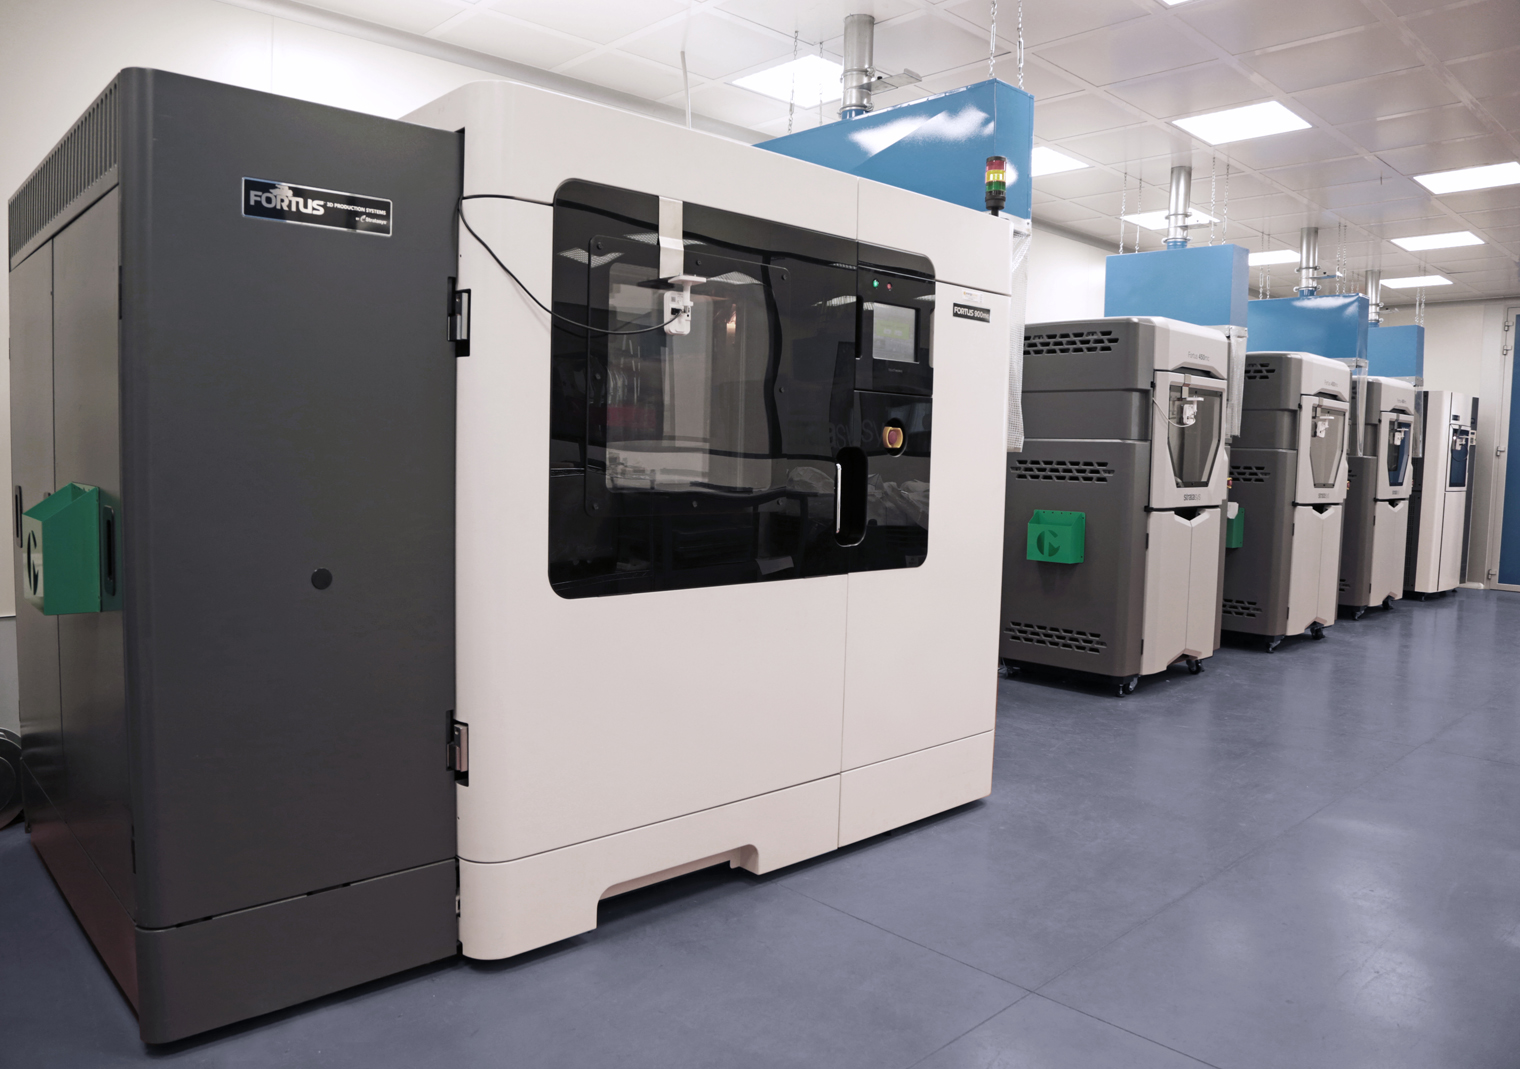 Marchesini Group's 3D printing facility, featuring twelve industrial-grade Stratasys 3D printers. Photo via Stratasys.